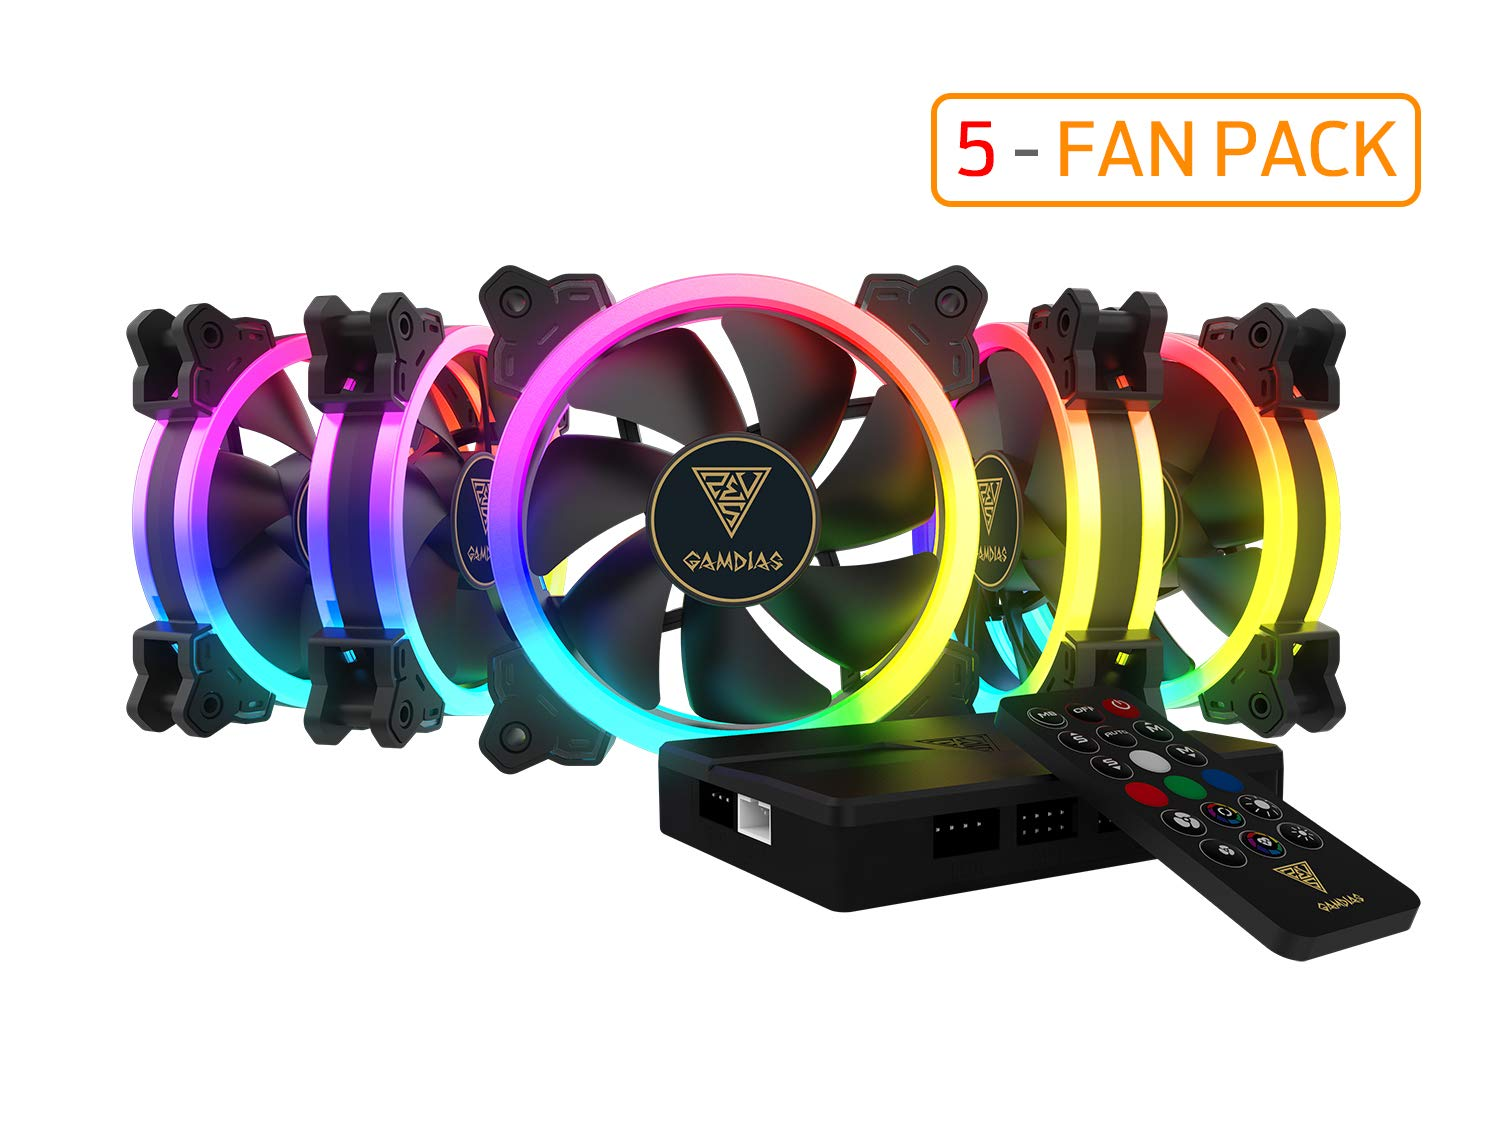 GAMDIAS RGB Case Fan 120mm Dual Light Loop Motherboard Sync with Remote Control Color - Five Fan Pack Cooling Aeolus M1-1205R